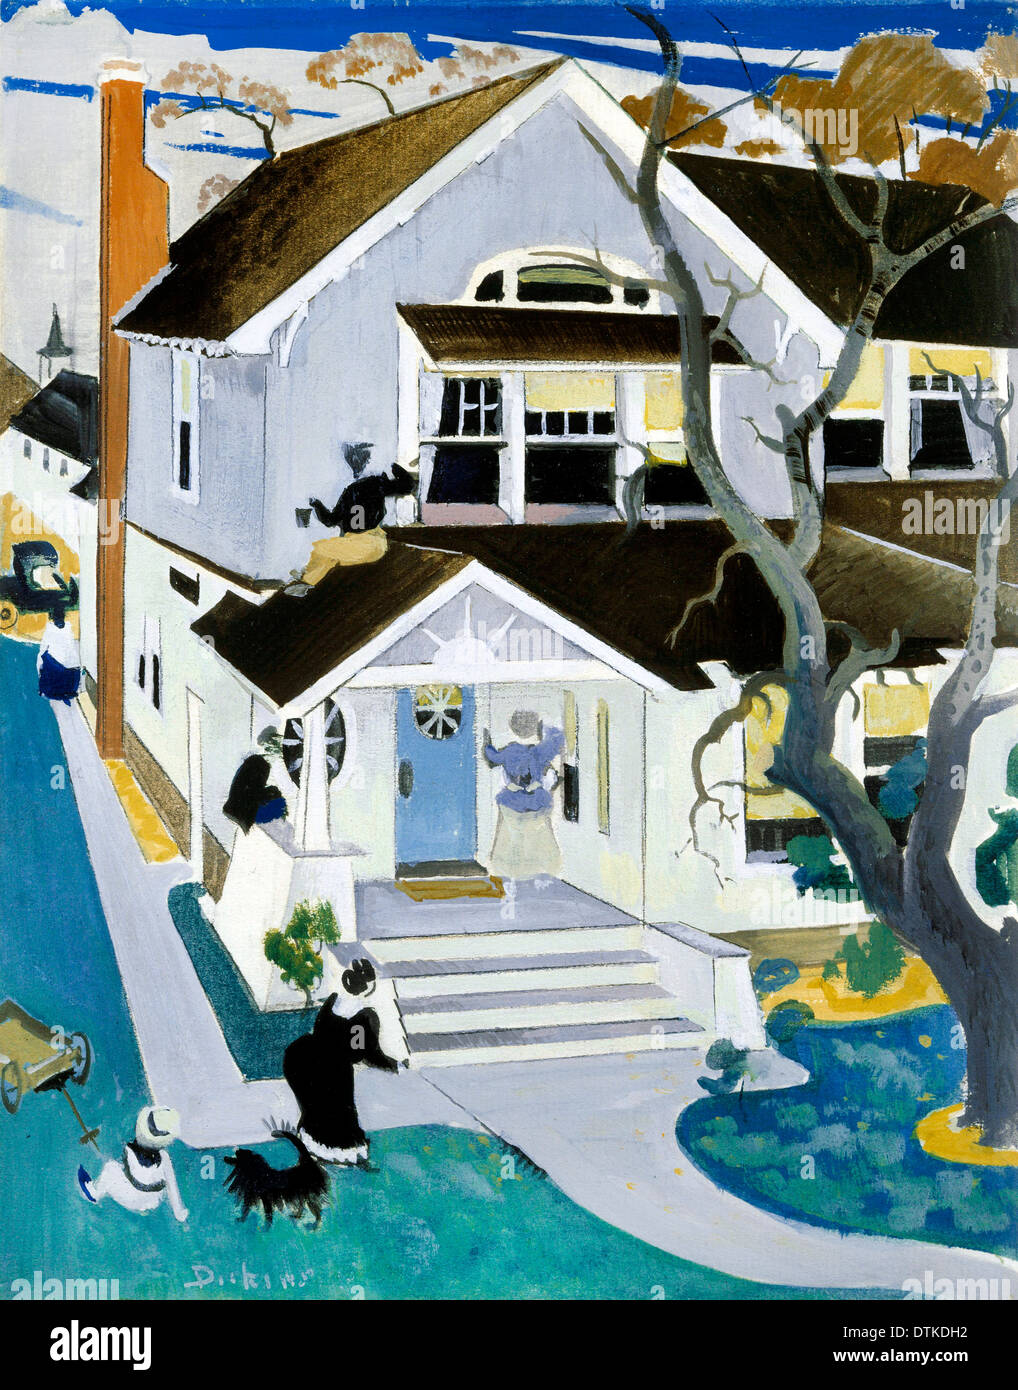 Preston Dickinson, My House. Undated. Gouache on Paper. Phillips Collection, Washington, D.C., USA. - Stock Image